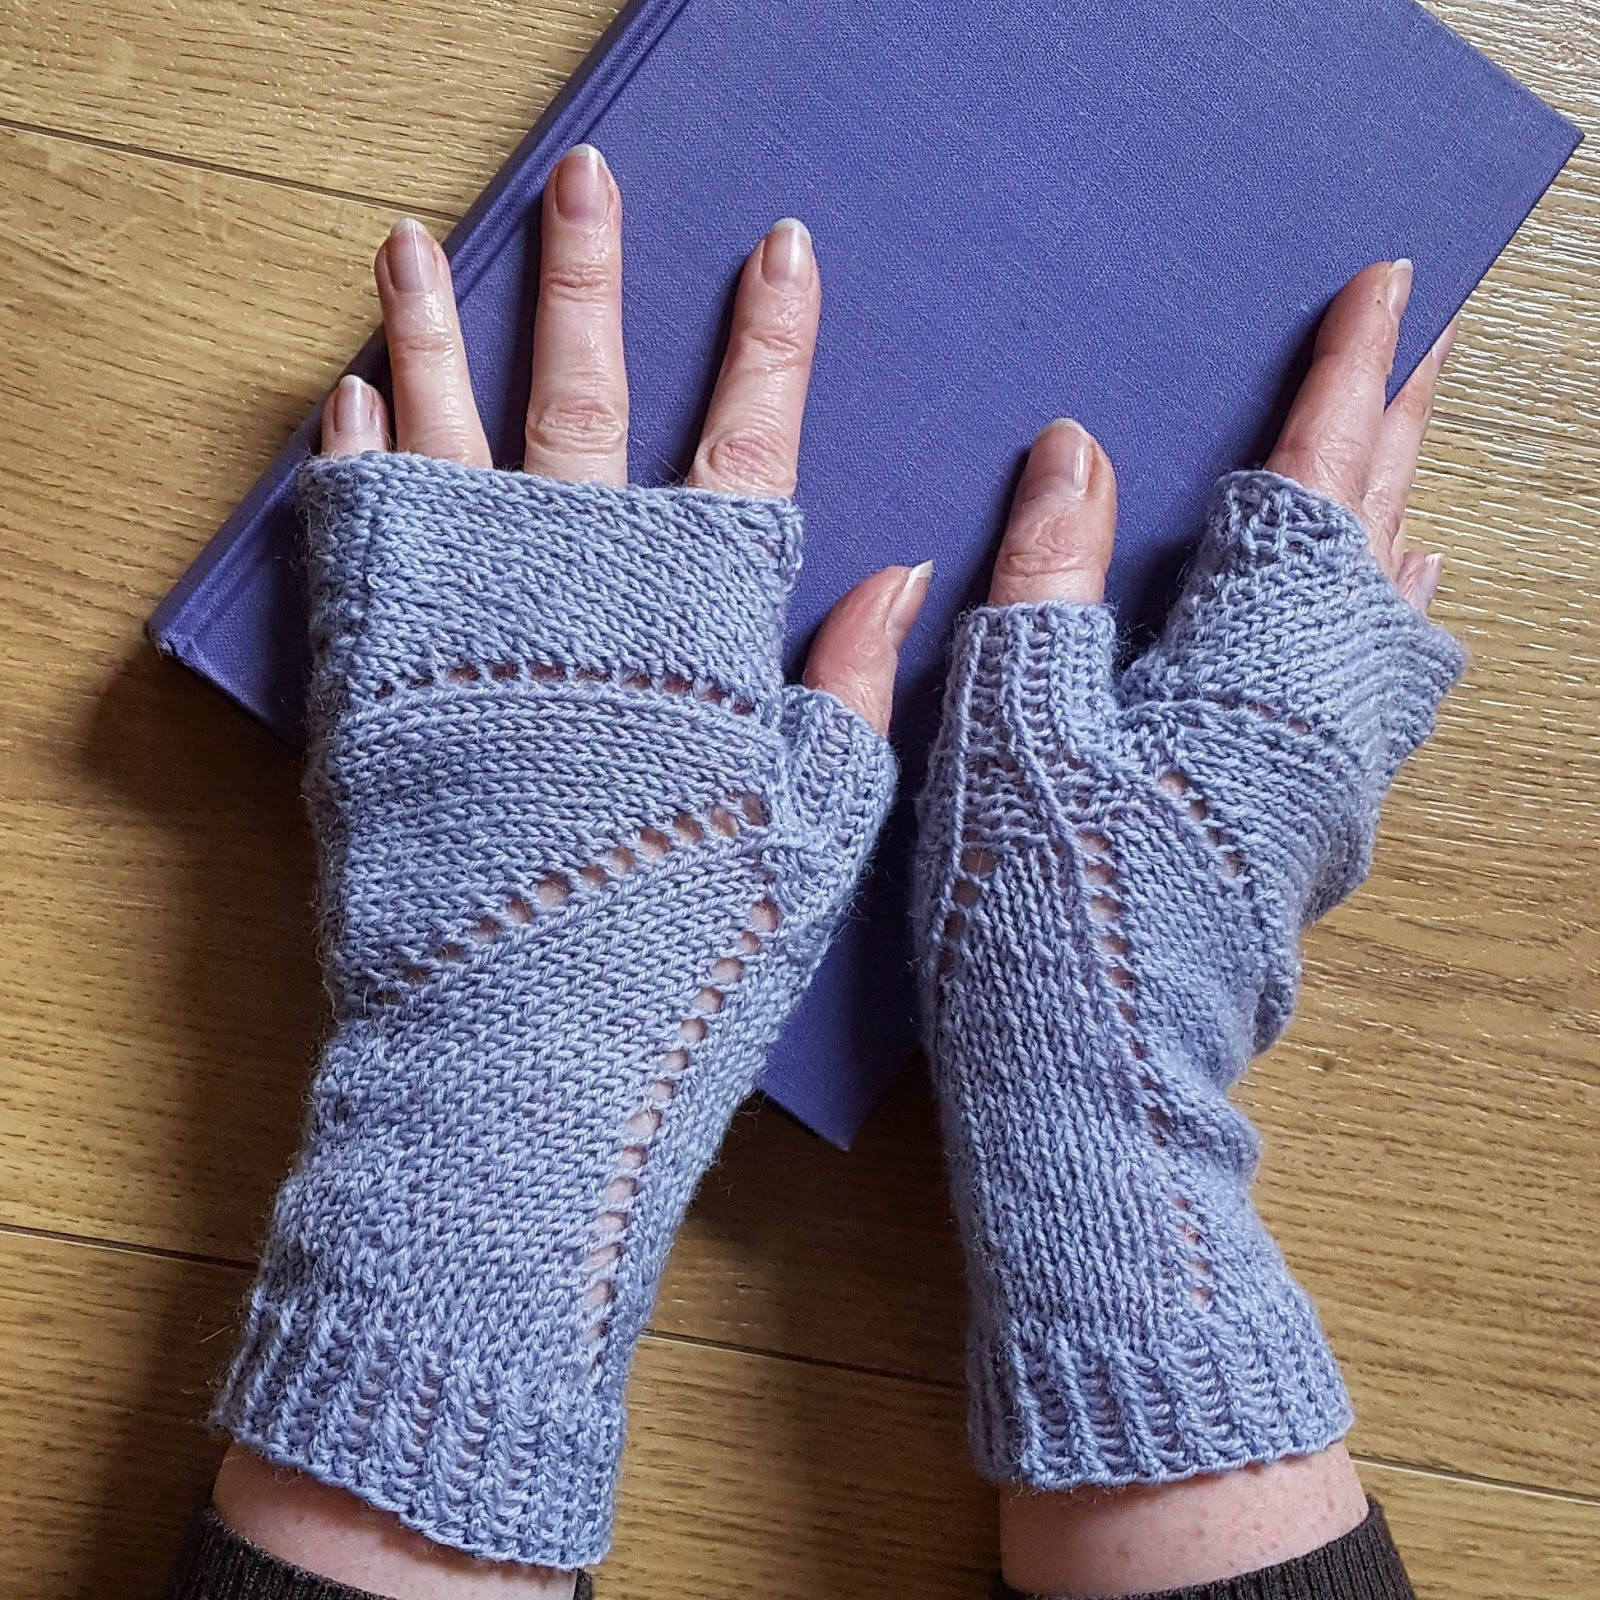 Free knitting patterns - fingerless gloves, scarves, knitting ideas ...